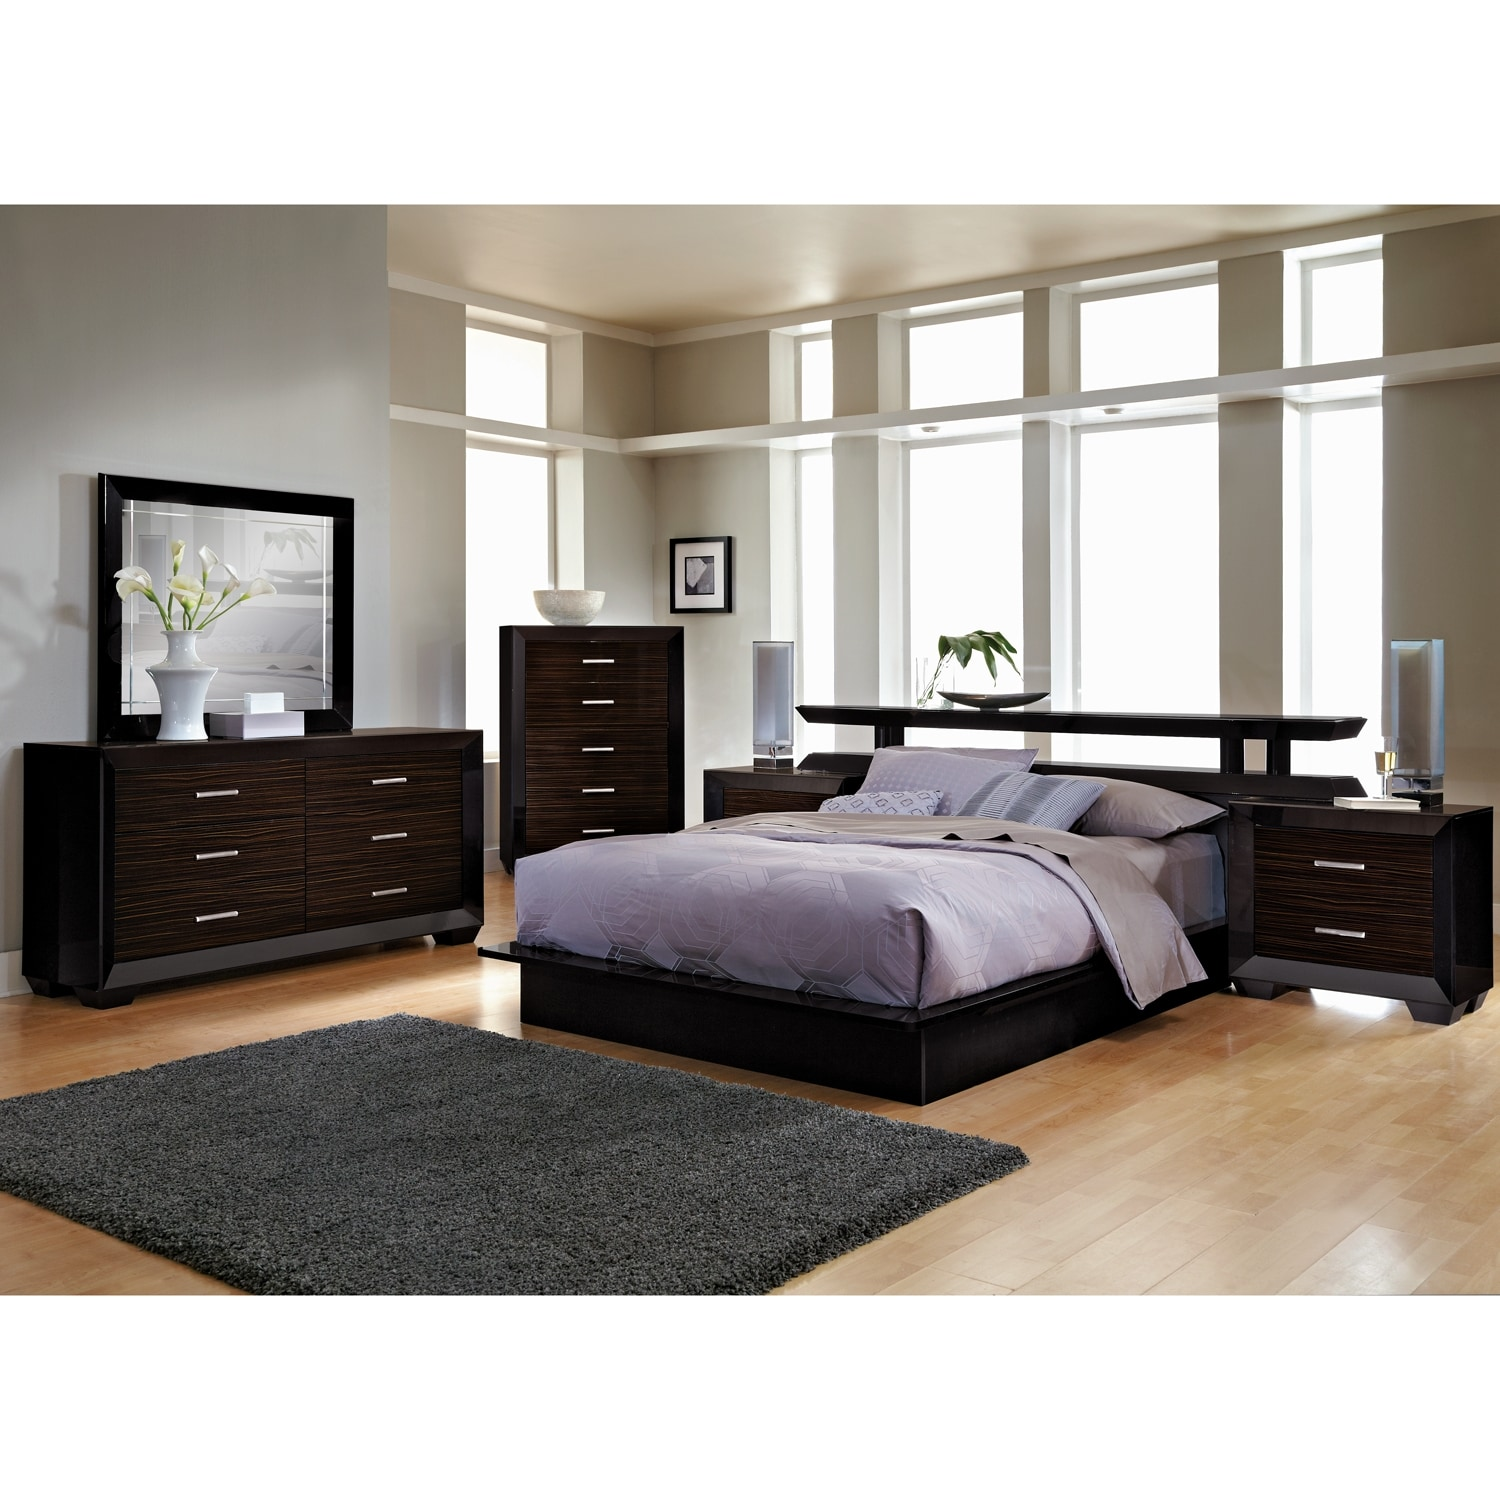 Serenity Nightstand  Value City Furniture